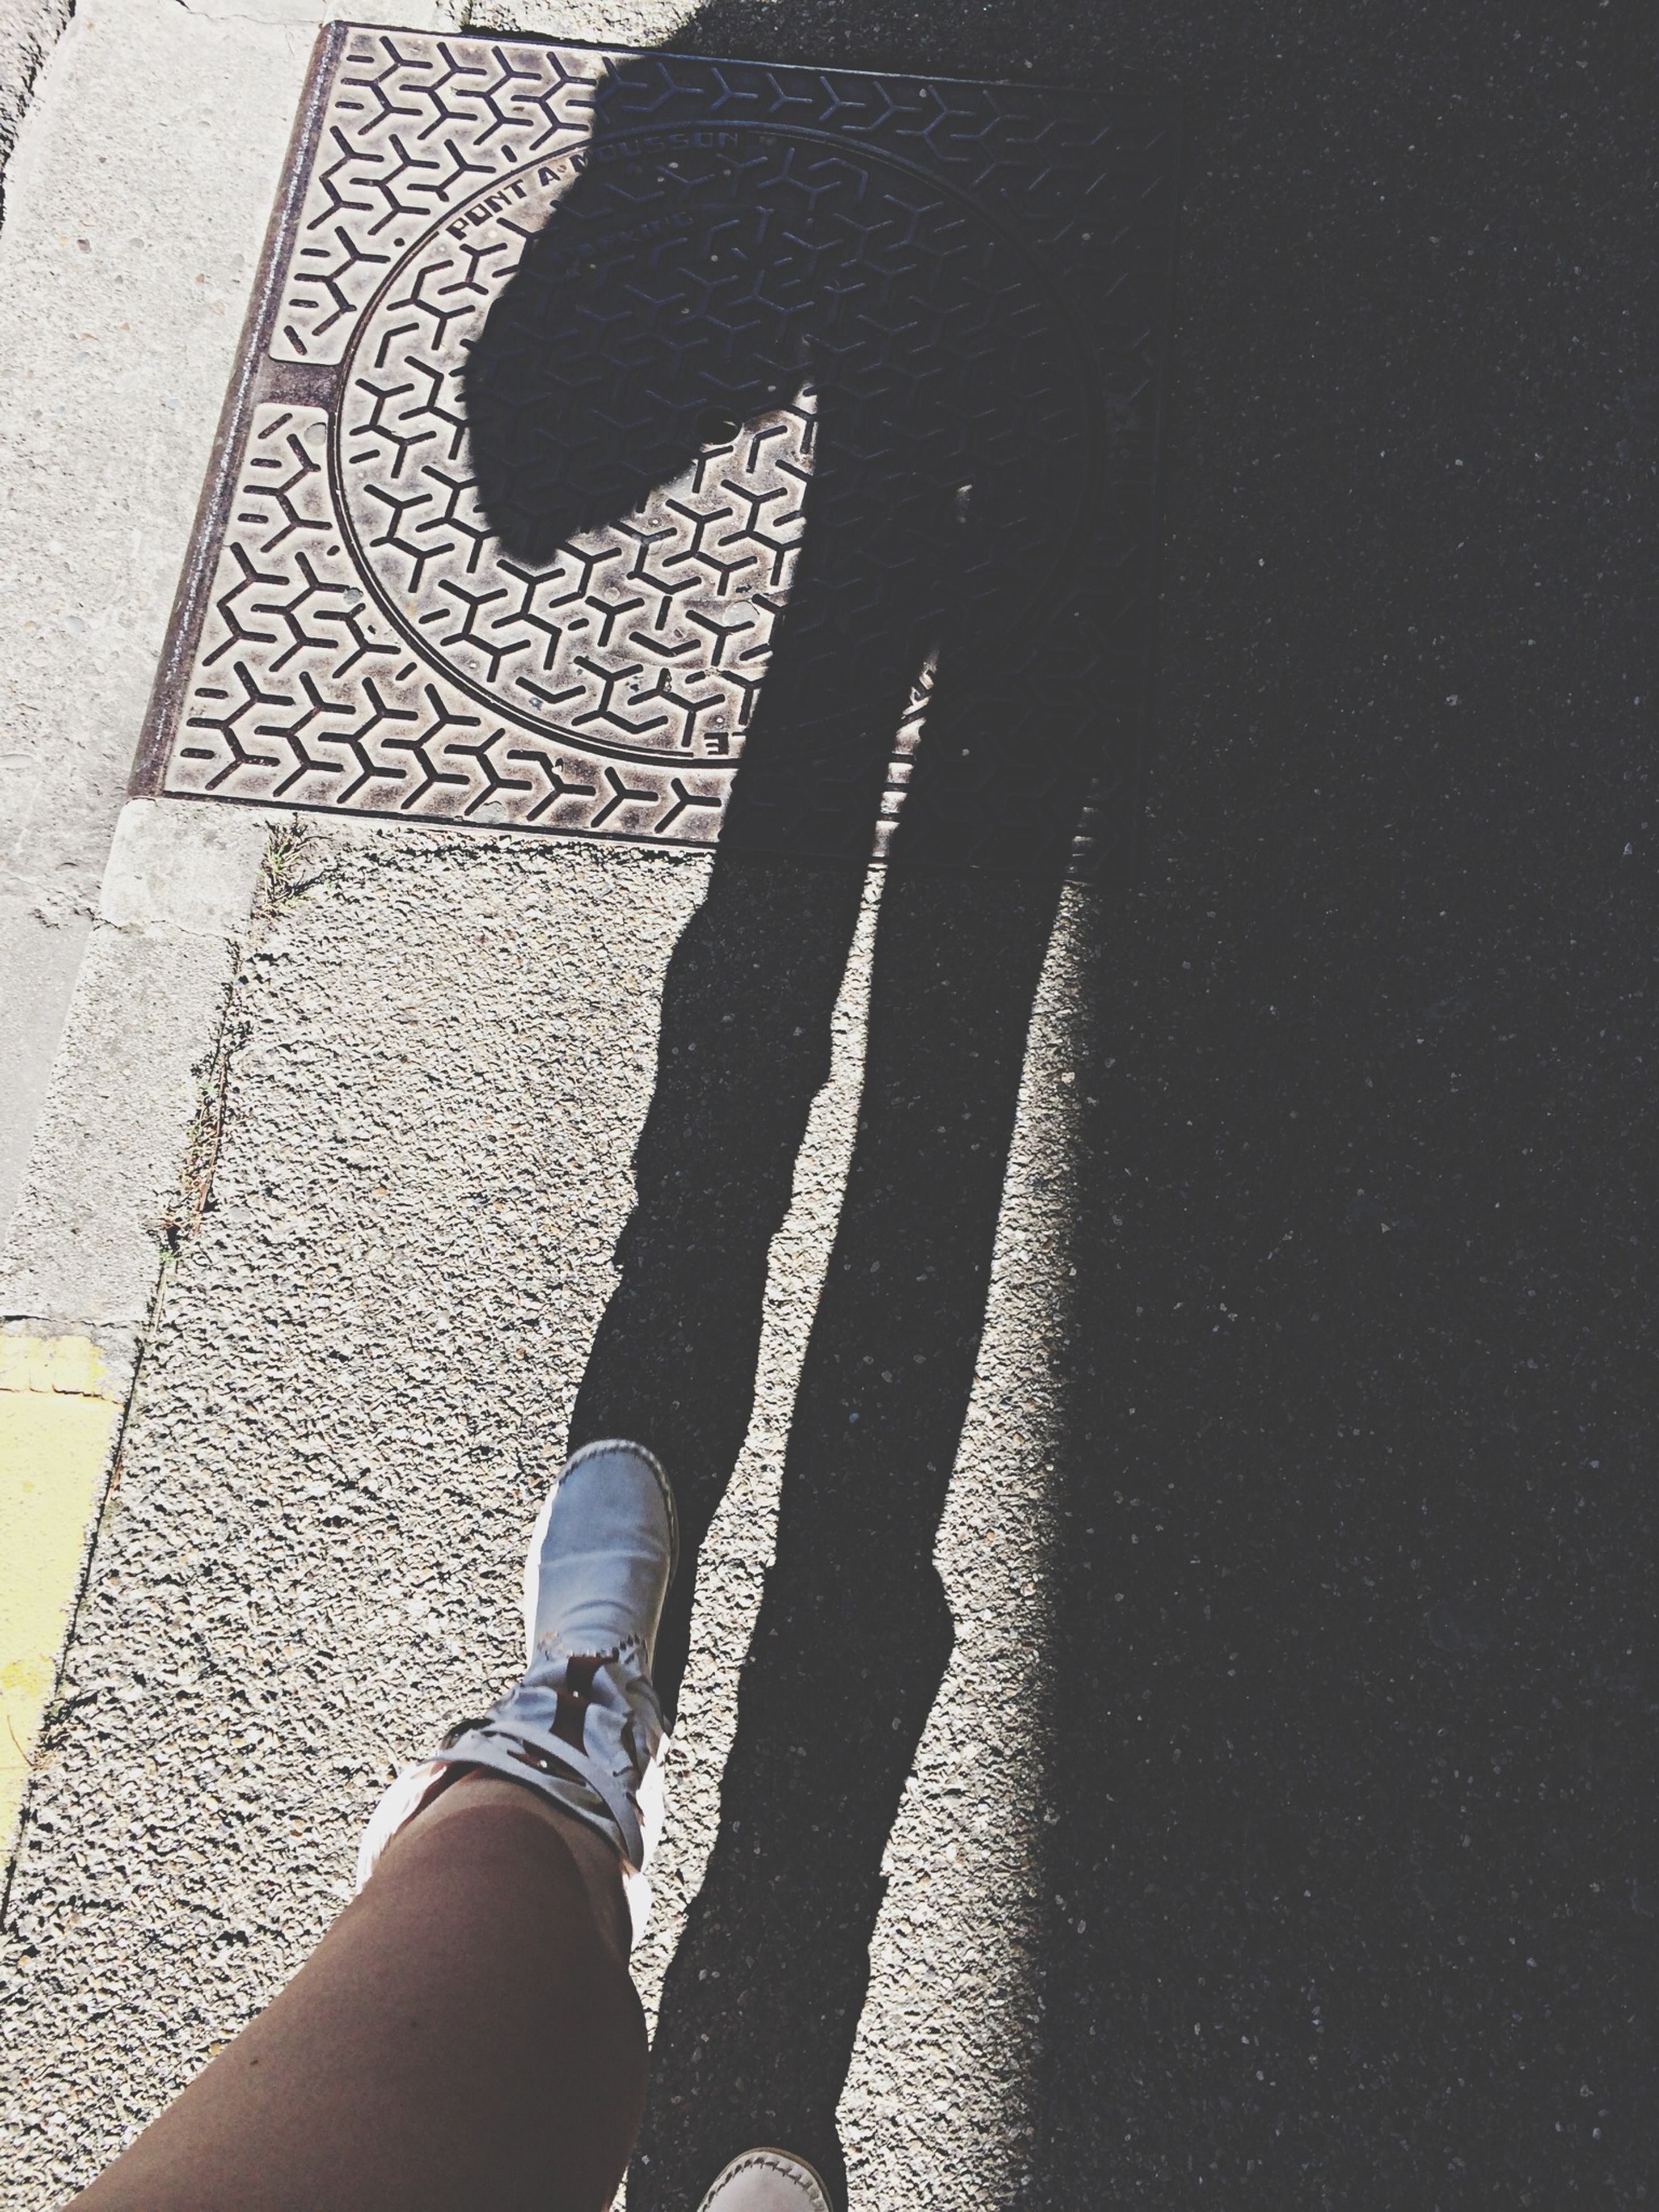 low section, person, lifestyles, leisure activity, high angle view, shoe, shadow, standing, personal perspective, unrecognizable person, men, part of, human foot, sunlight, street, footwear